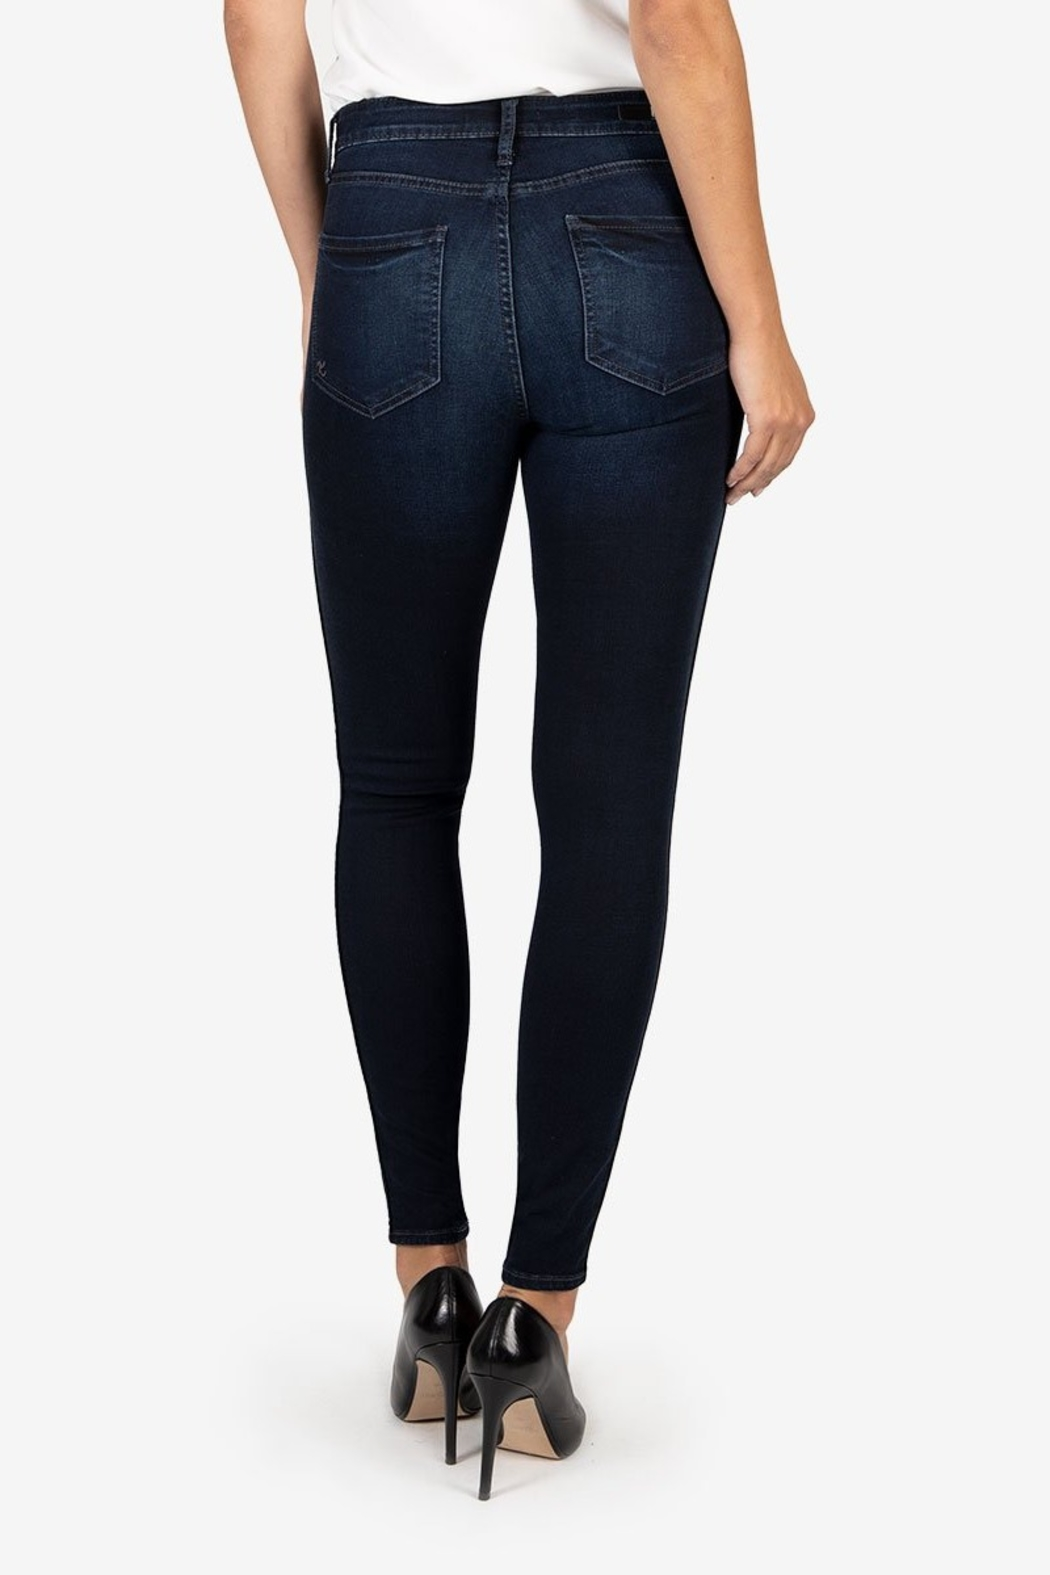 Kut from the Kloth MIA HIGH RISE FAB AB TOOTHPICK - Side Cropped Image